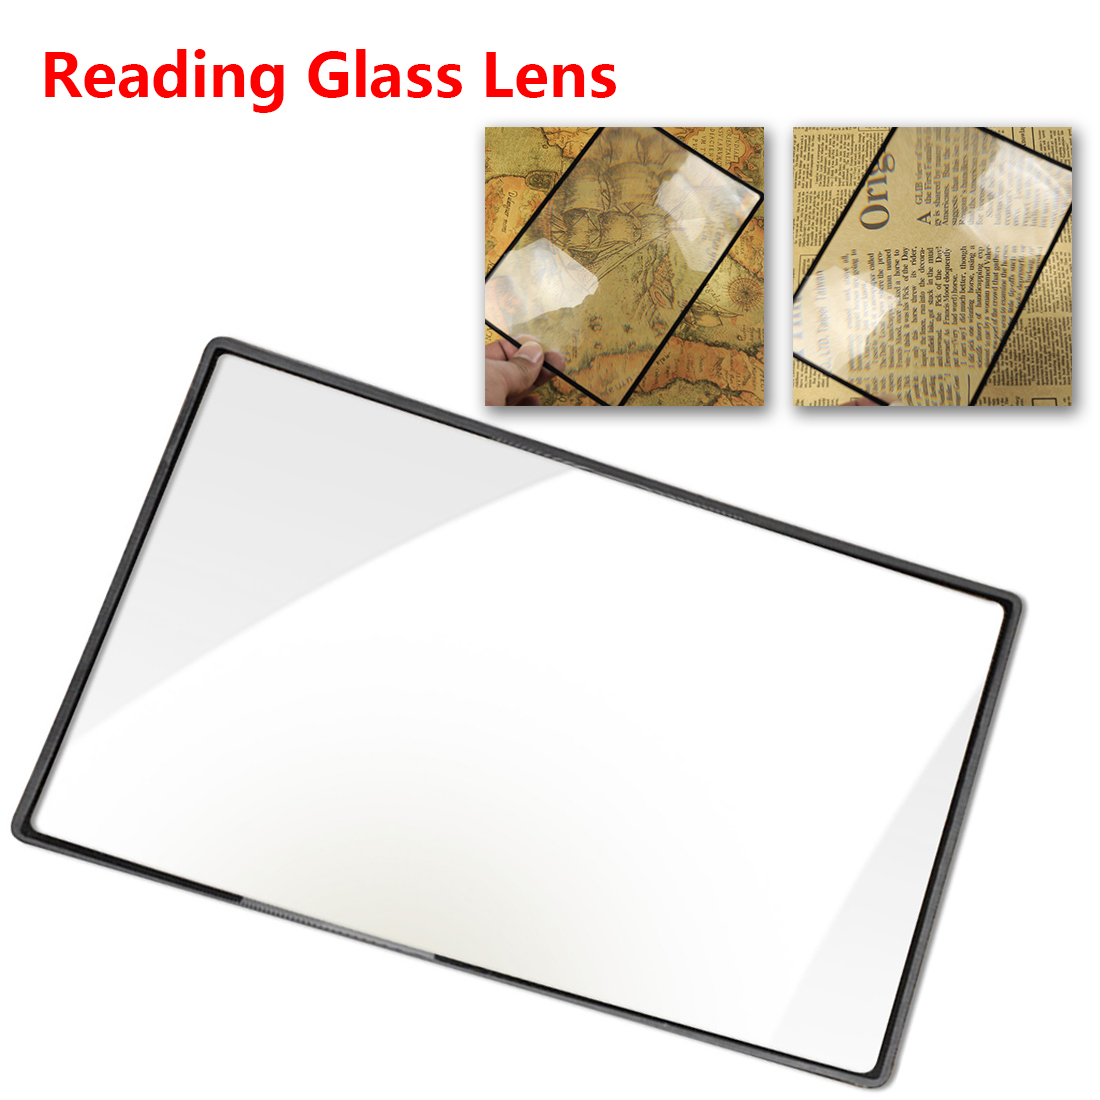 Magnifying Reading Glass Lens 180X120mm Convinient A5 Flat PVC Magnifier Sheet X3 Book Page Magnification